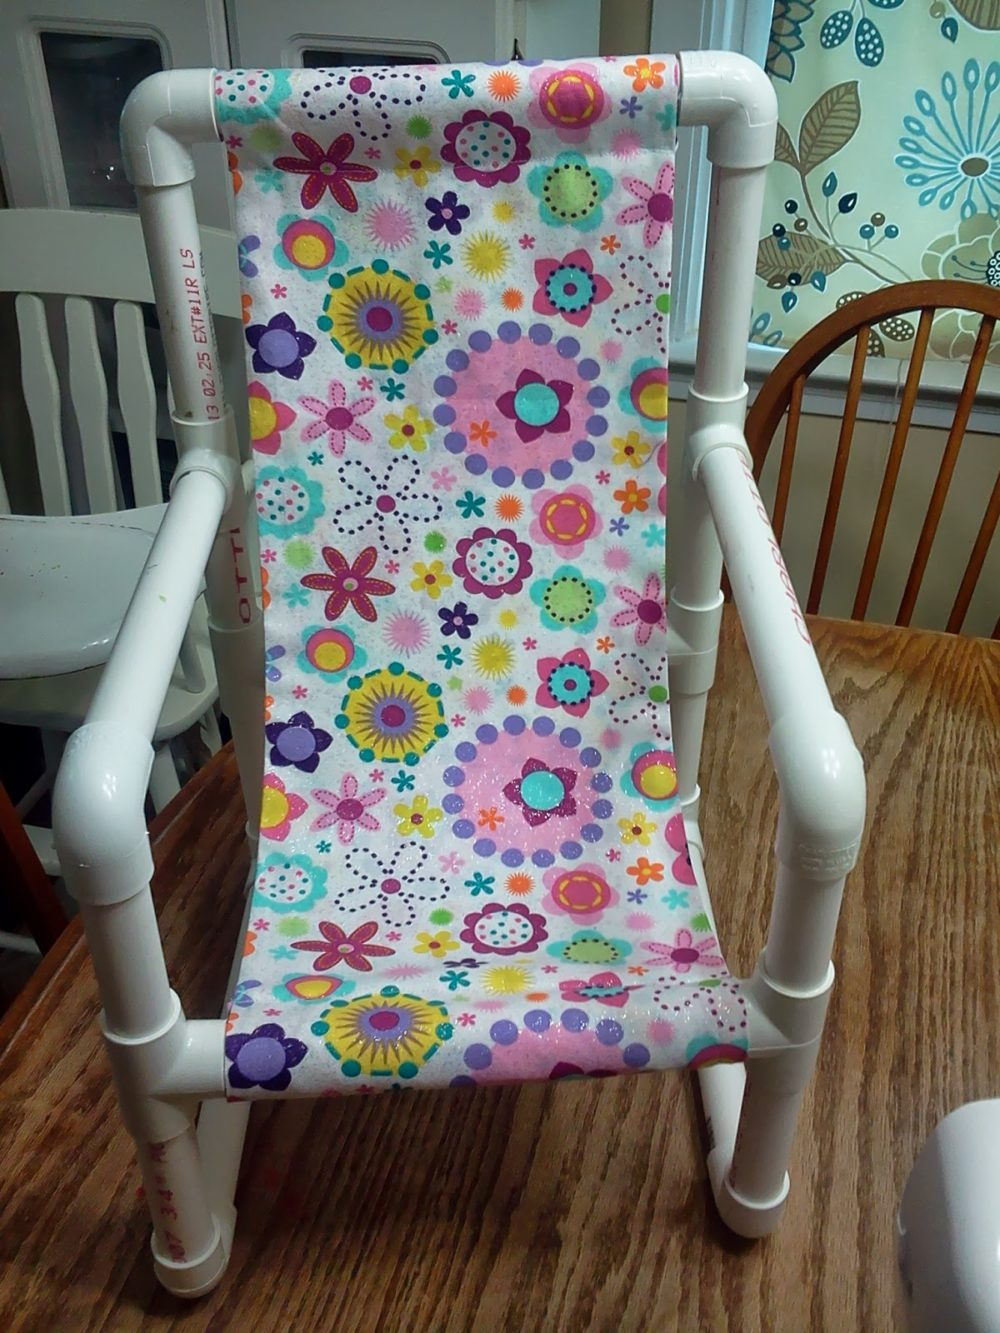 PVC Pipe Toddler Chair